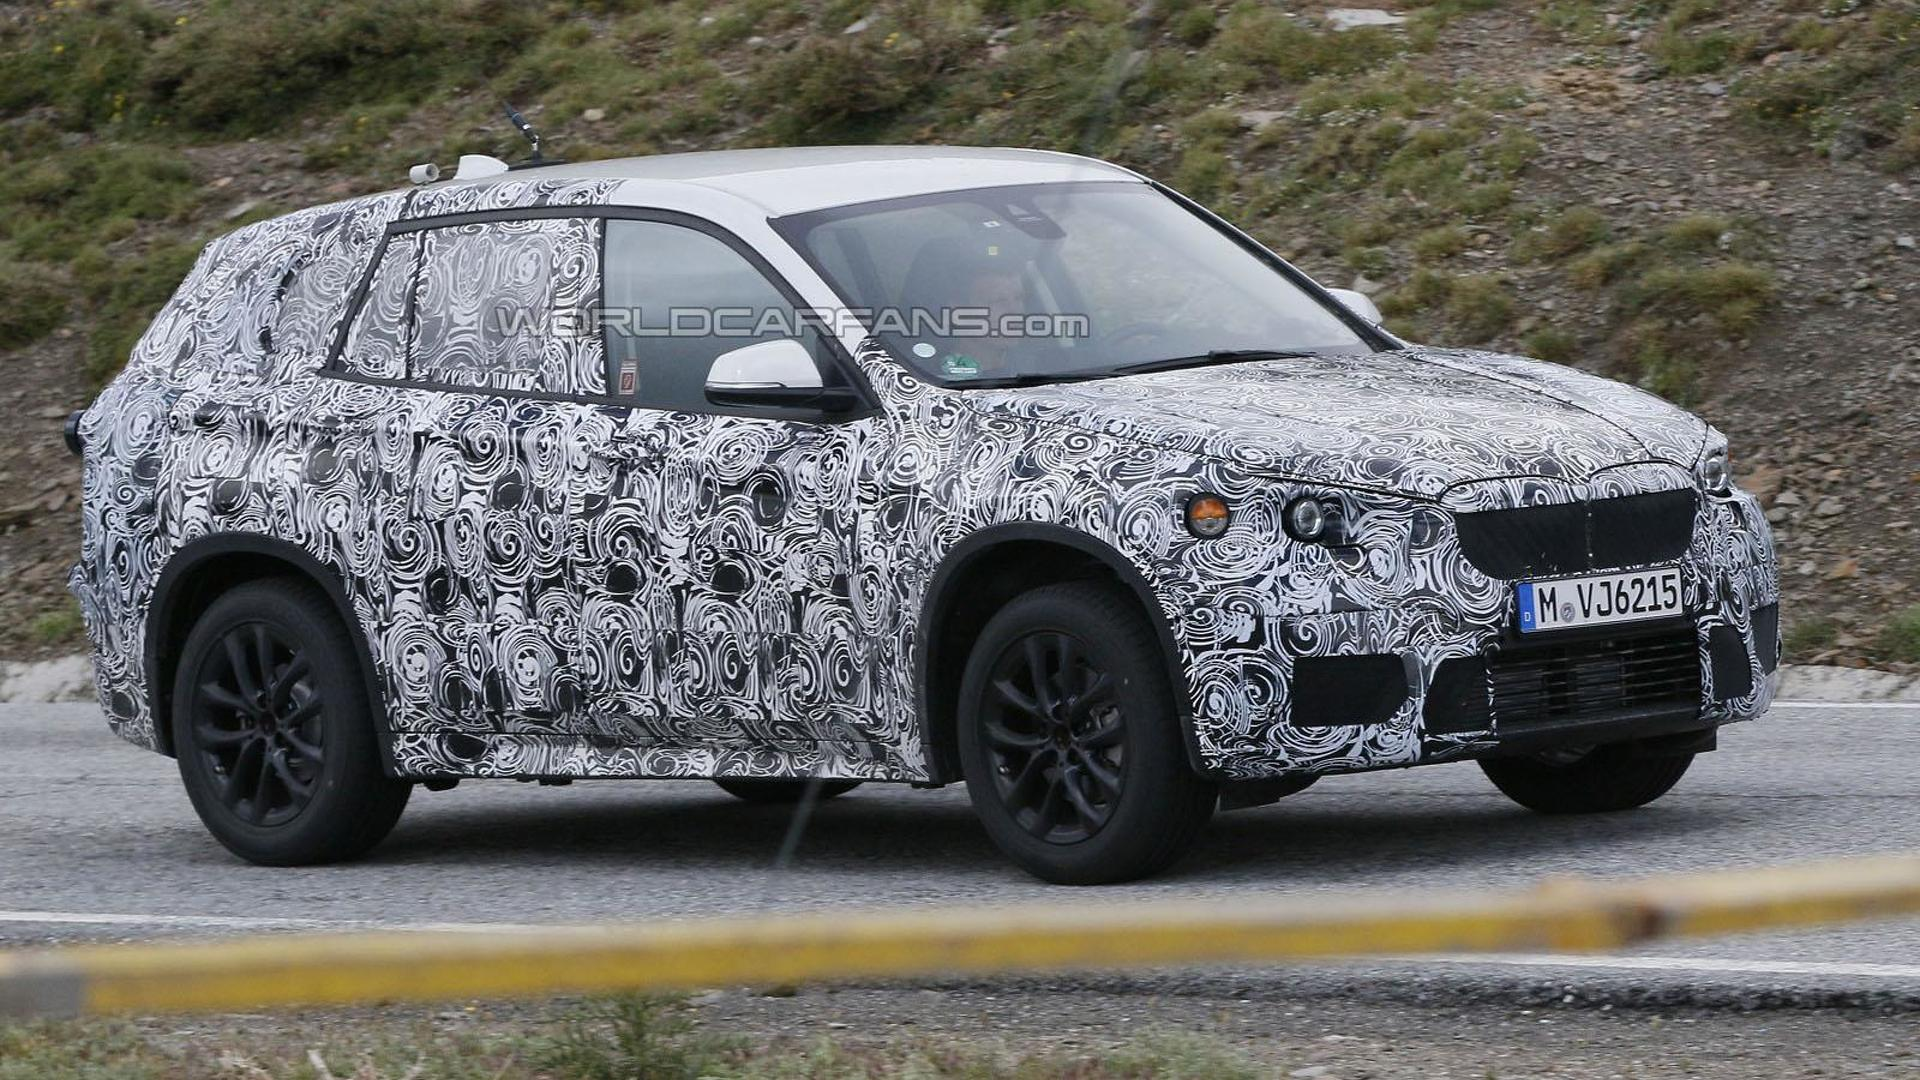 BMW to launch six front-wheel drive models including a Z2 roadster